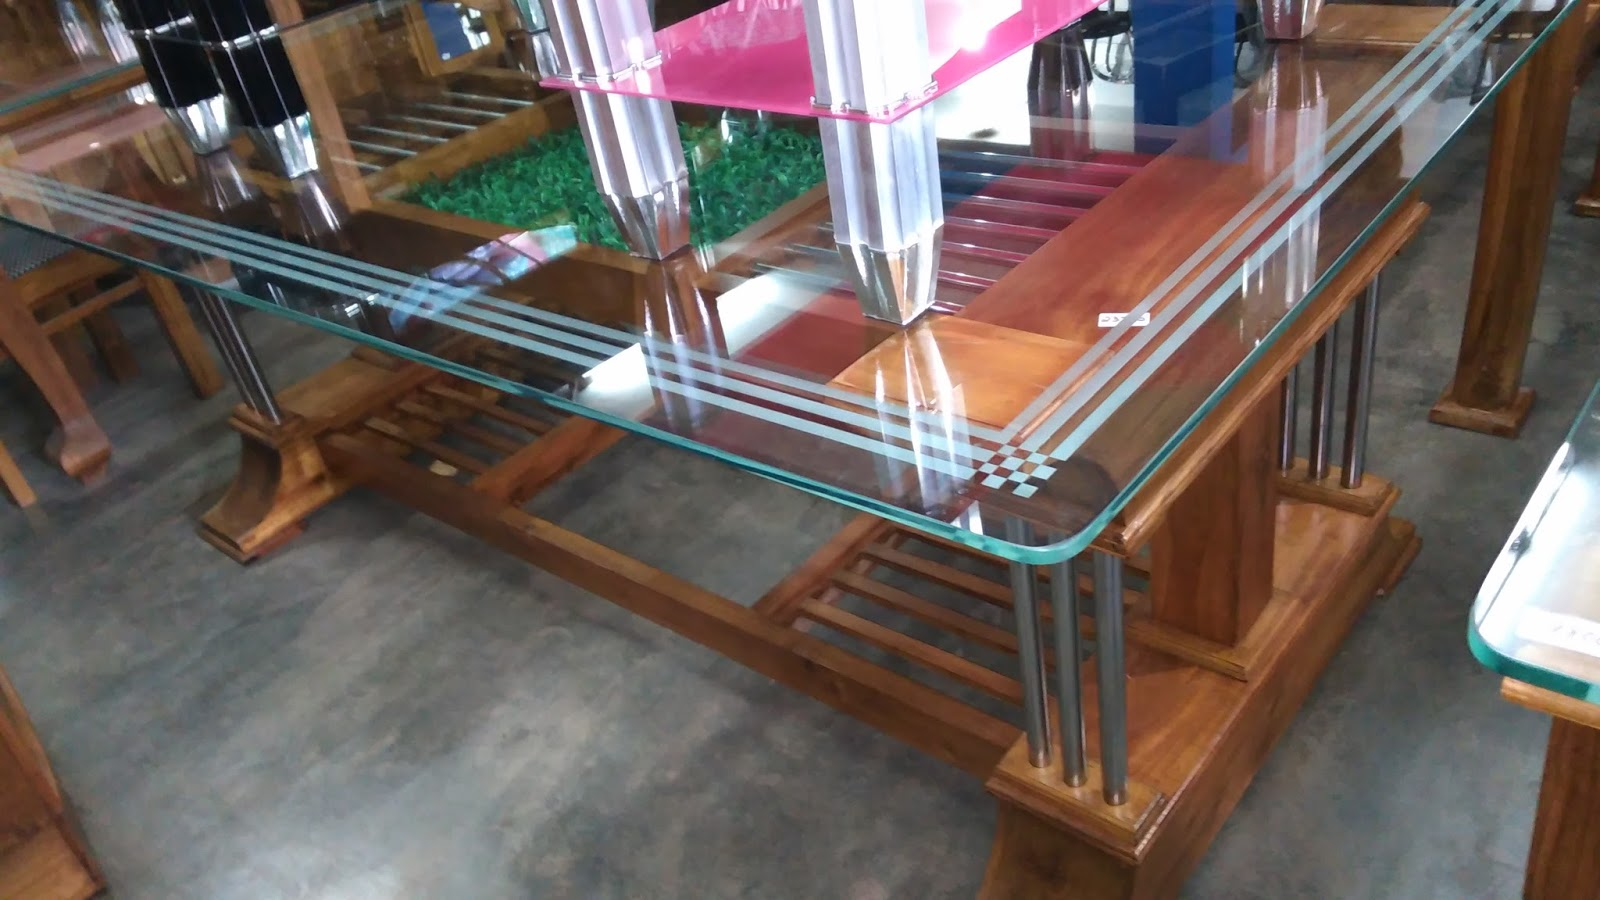 Kerala style carpenter works and designs dining table designs for Wooden glass dining table designs